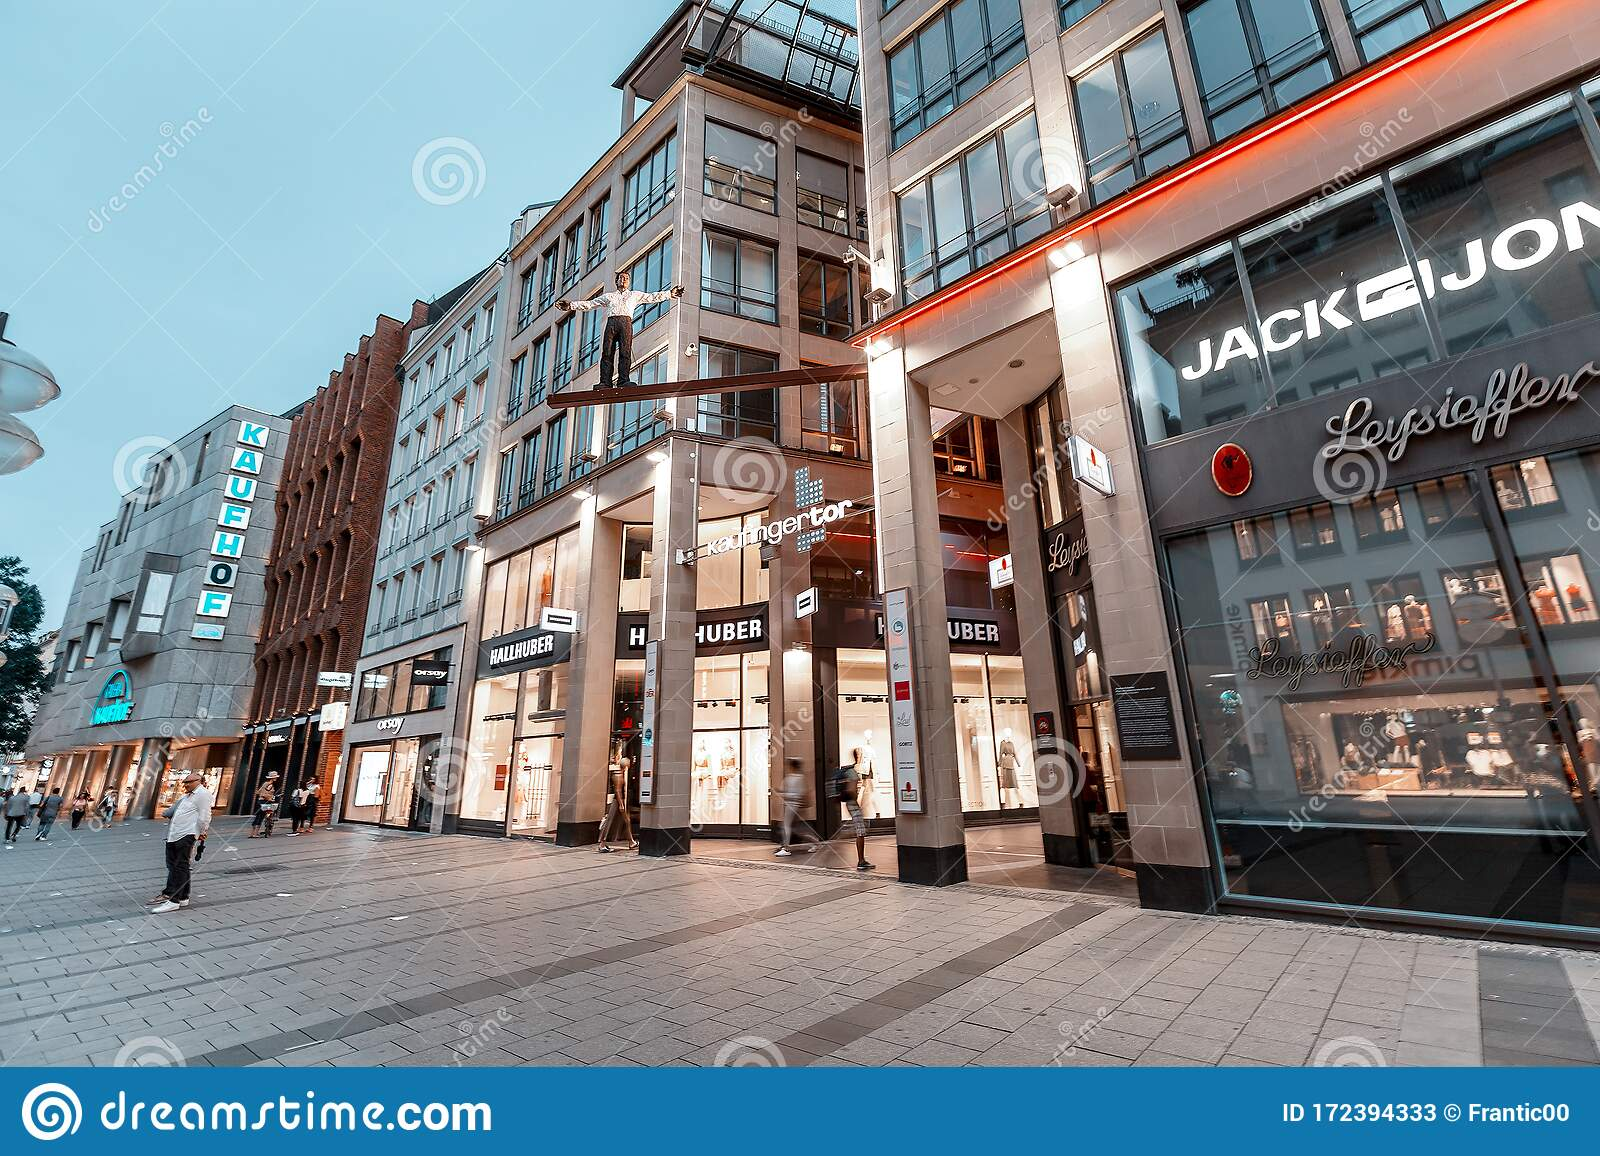 Kaufingertor Passage Shopping Mall At Evening Editorial Stock Photo Image Of Indoor Building 172394333